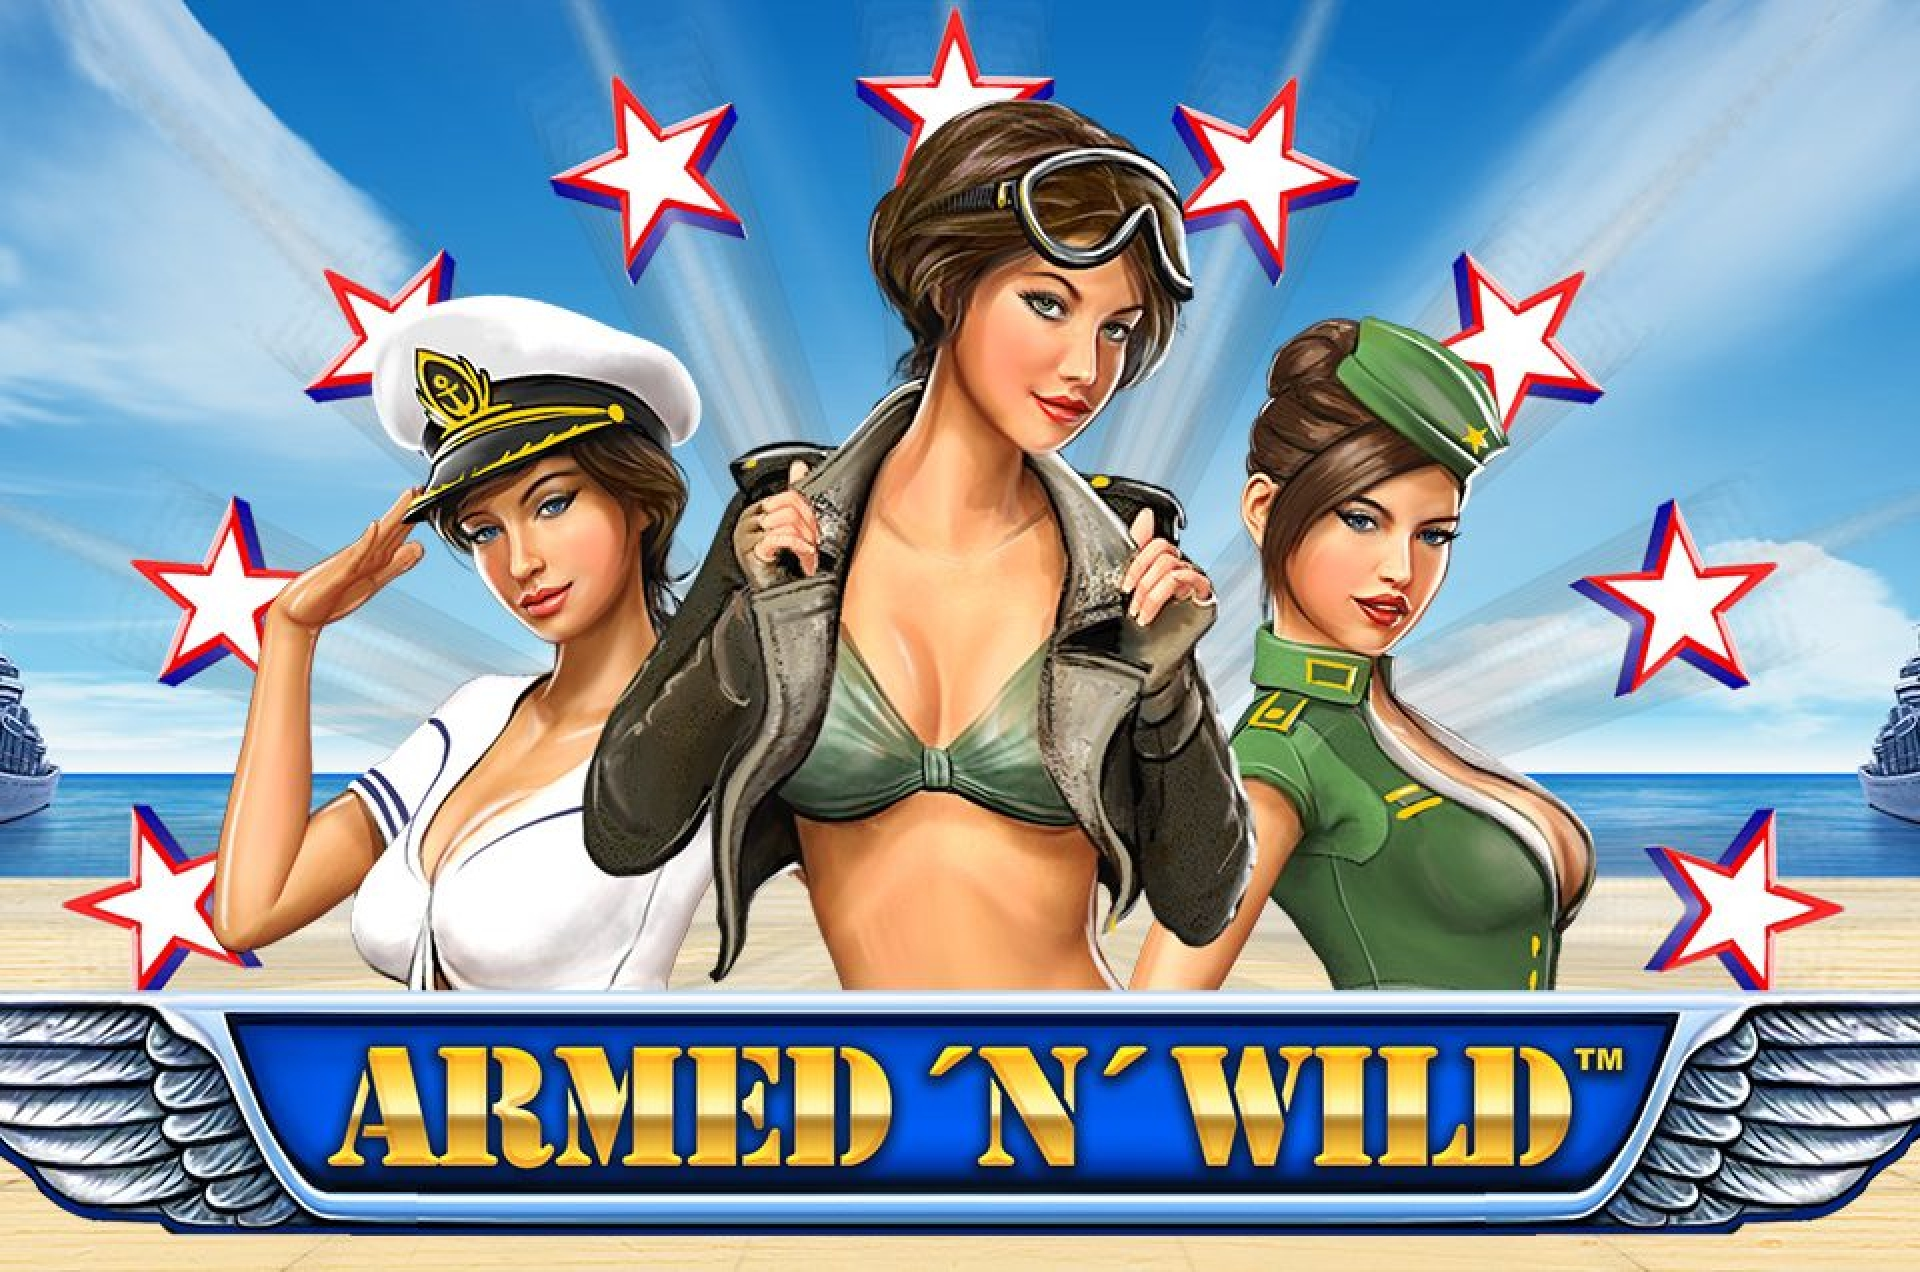 The Armed 'N' Wild Online Slot Demo Game by Synot Games